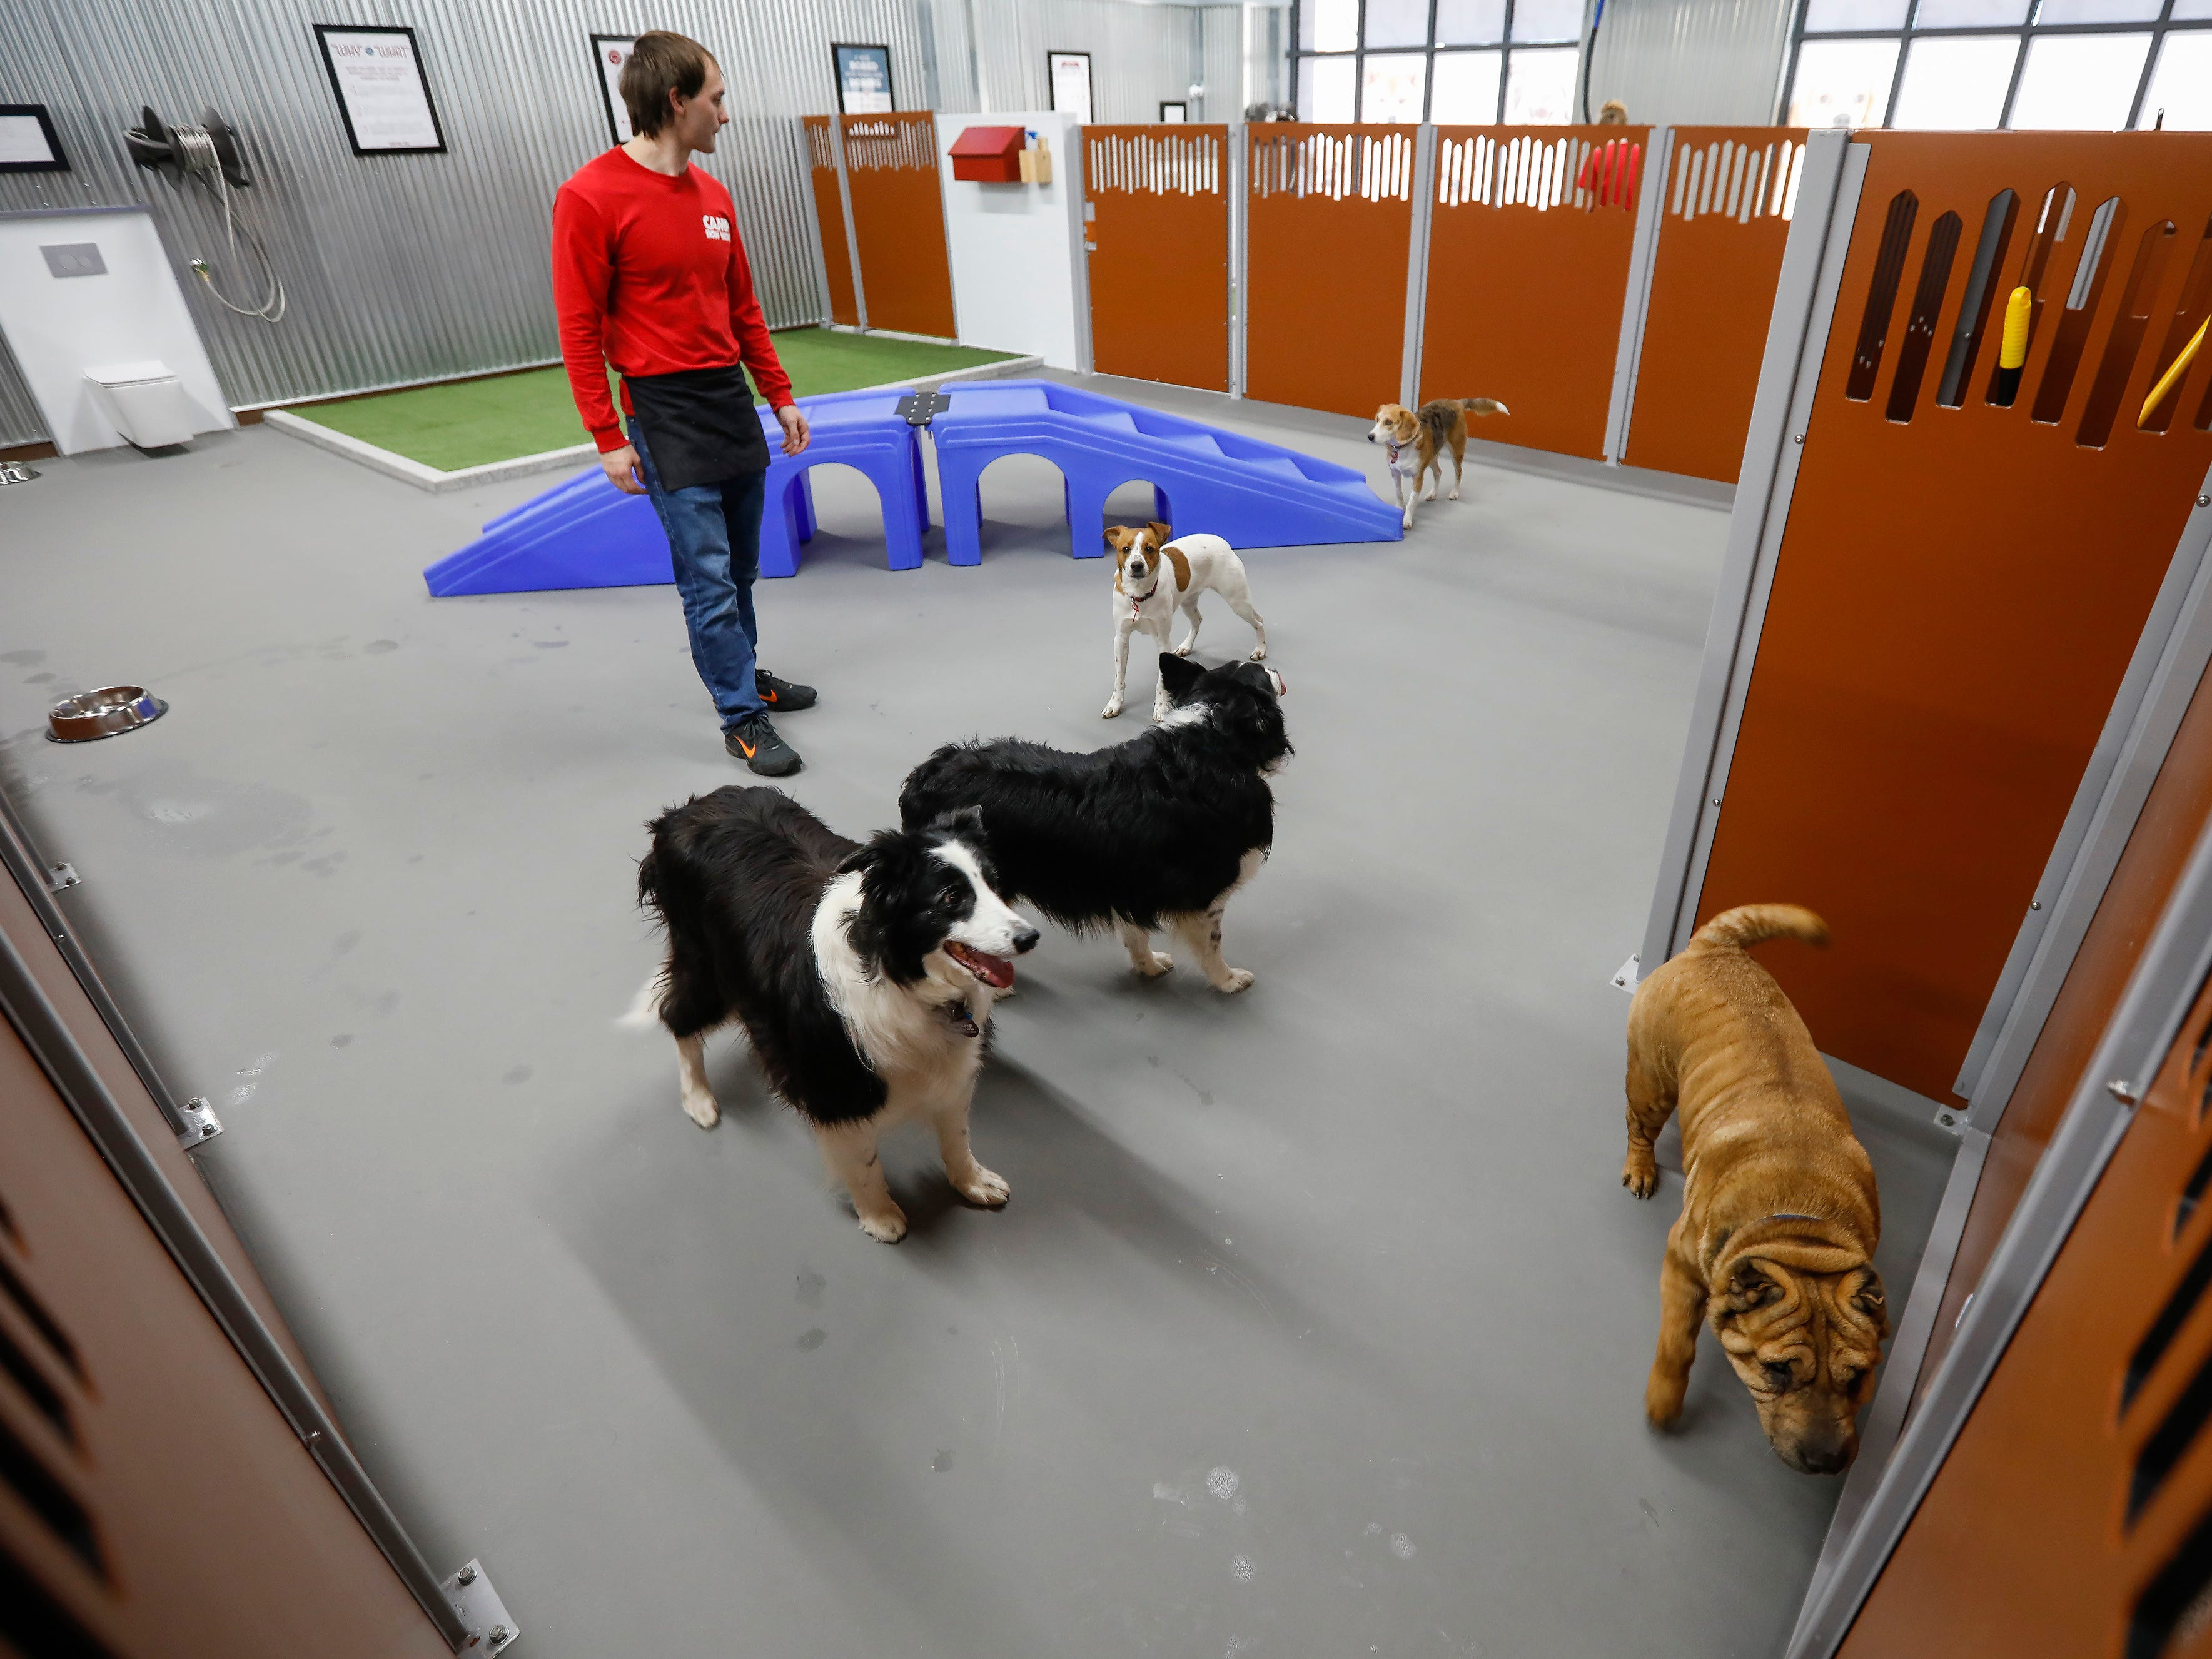 Ian Harms, a camp counselor at the new Camp Bow Wow located at 2814 S. Fremont Ave., Suite 104., keeps an eye on the larger dogs as they socialize together in the play area.